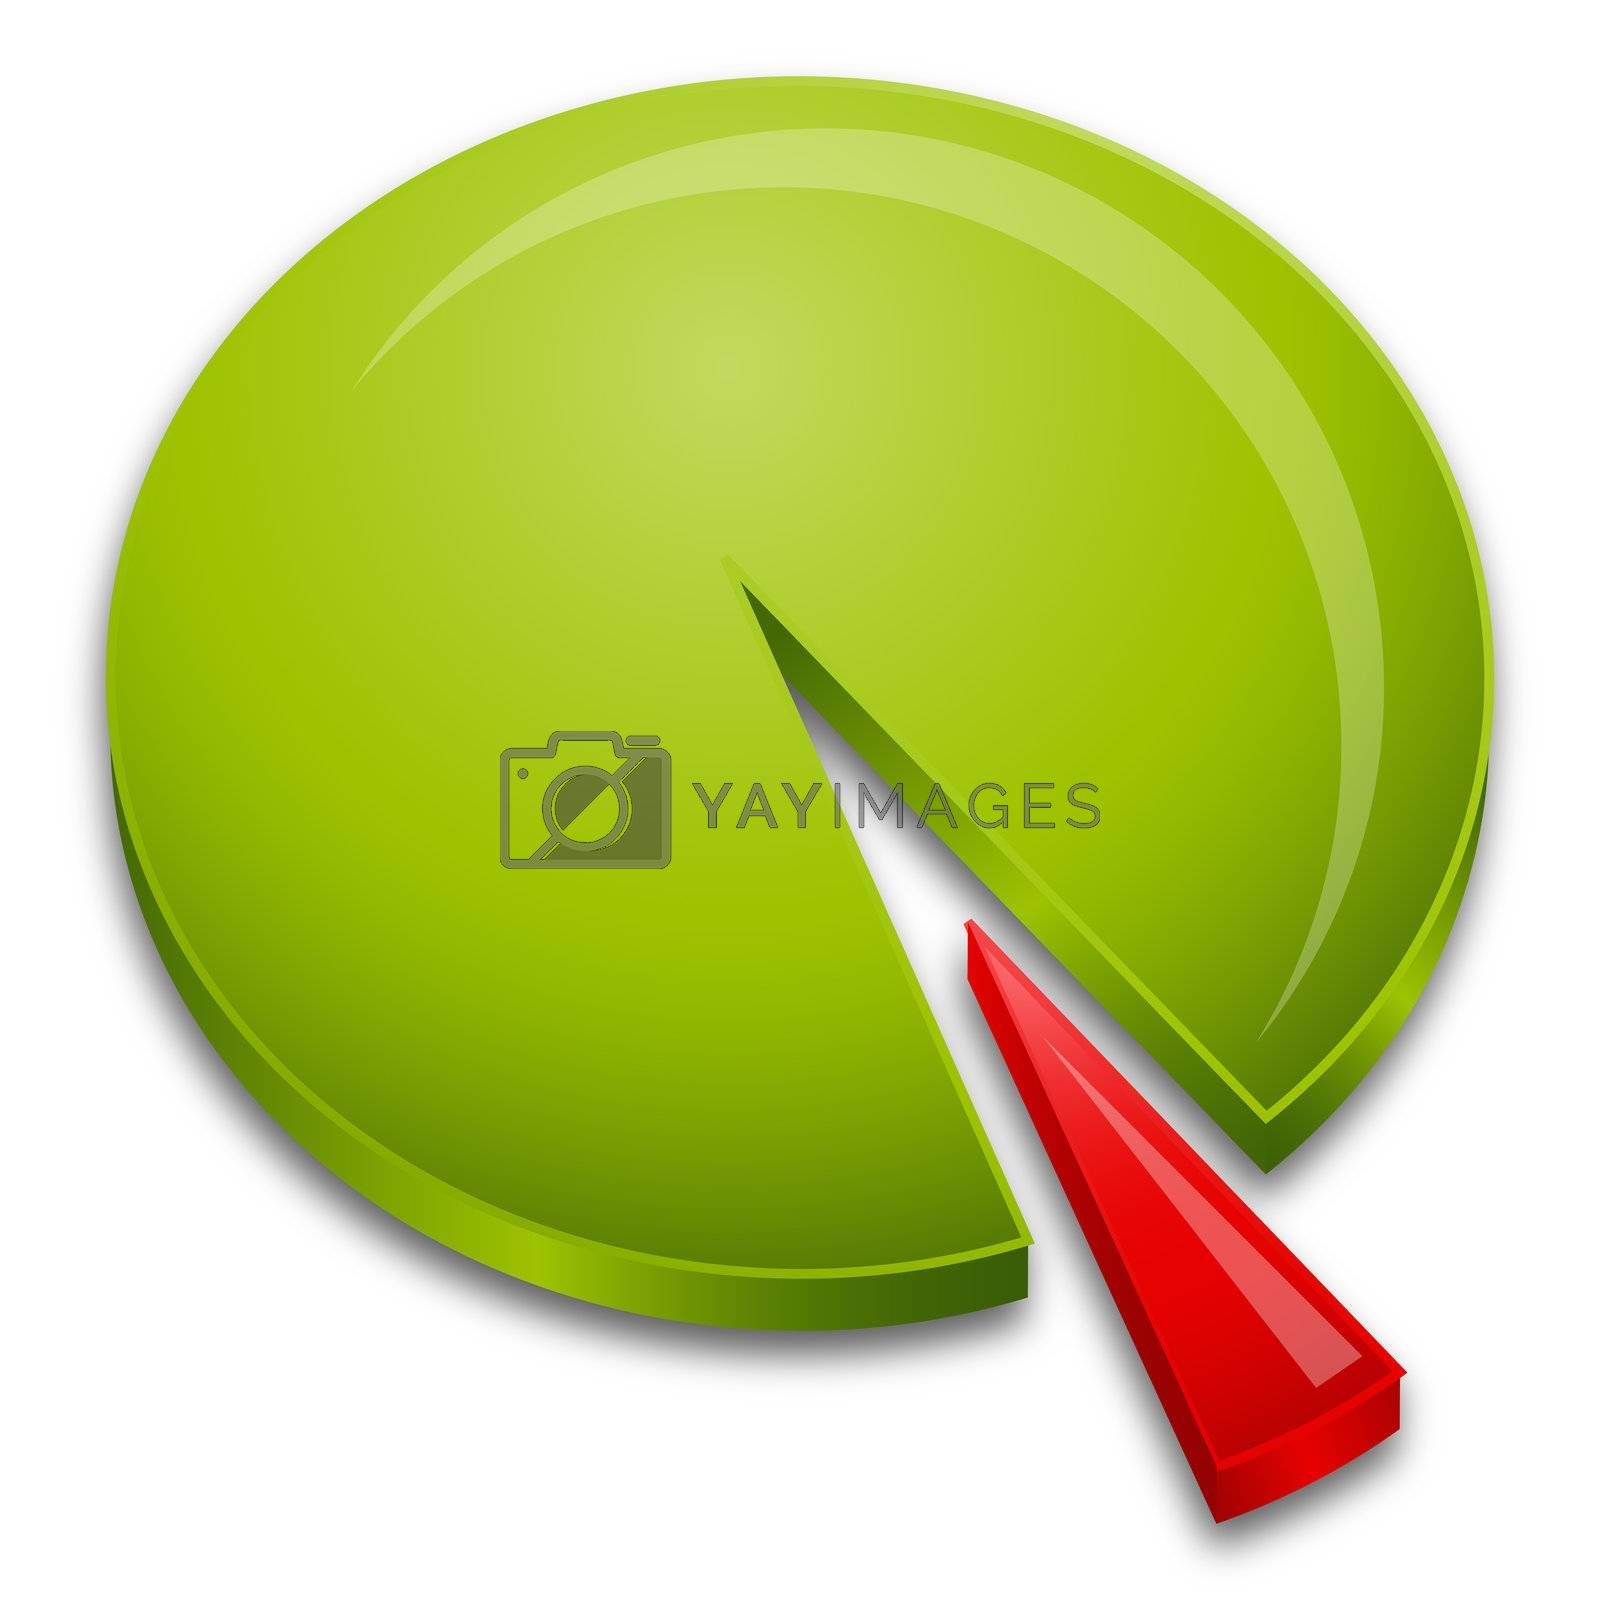 Royalty free image of pie chart by get4net